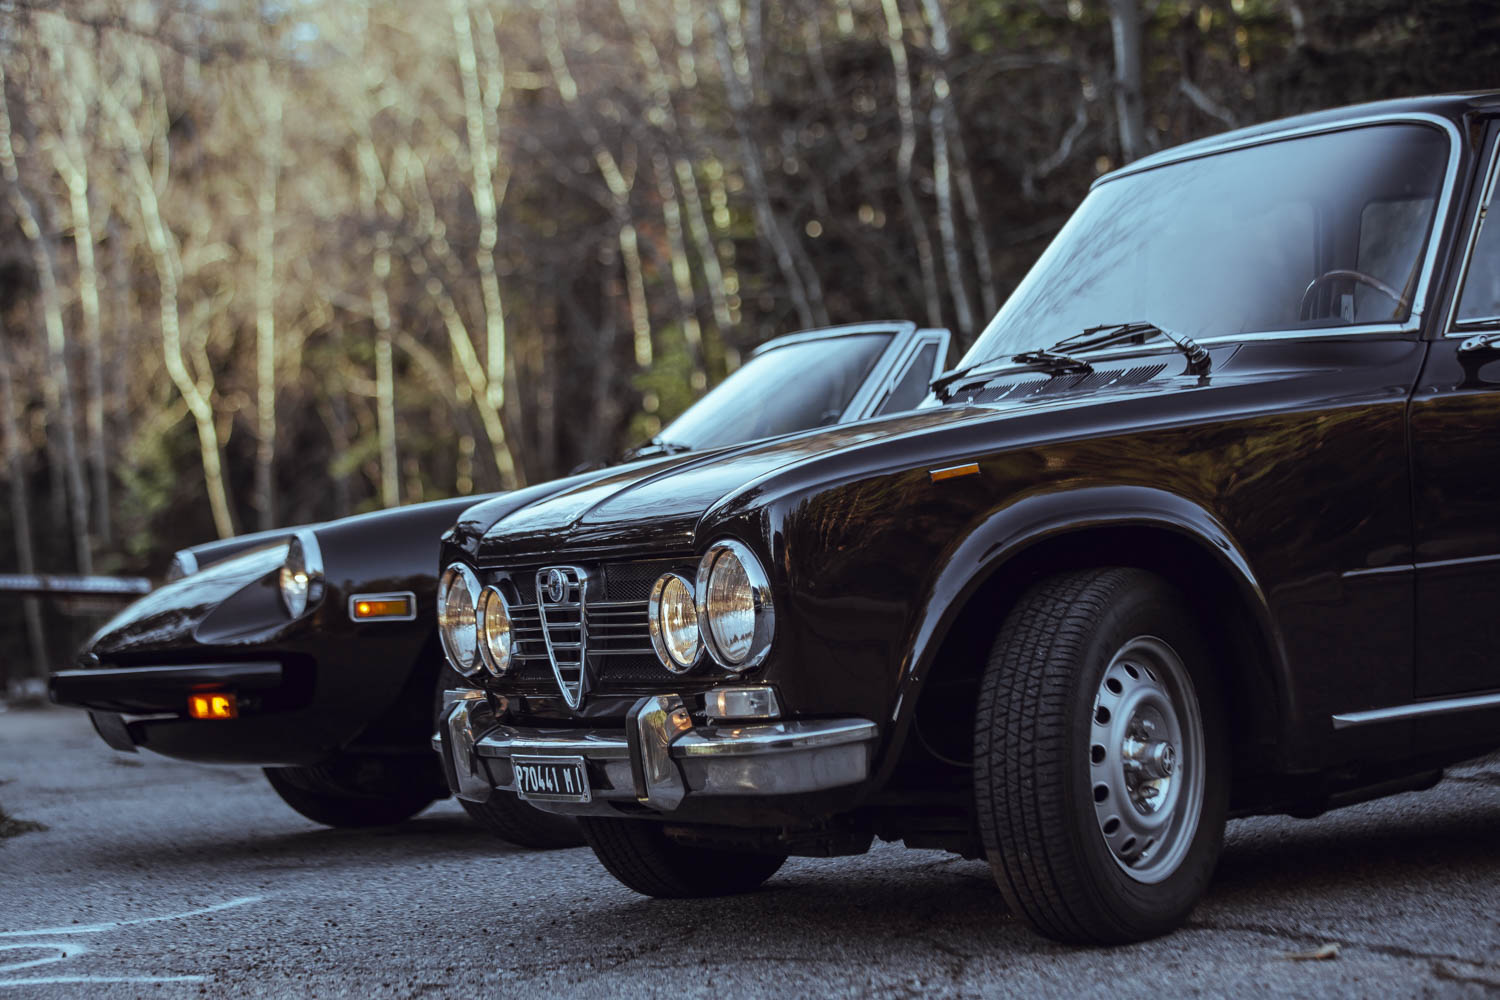 1972 Alfa Romeo Giuila Super and 1978 Alfa Romeo Spider